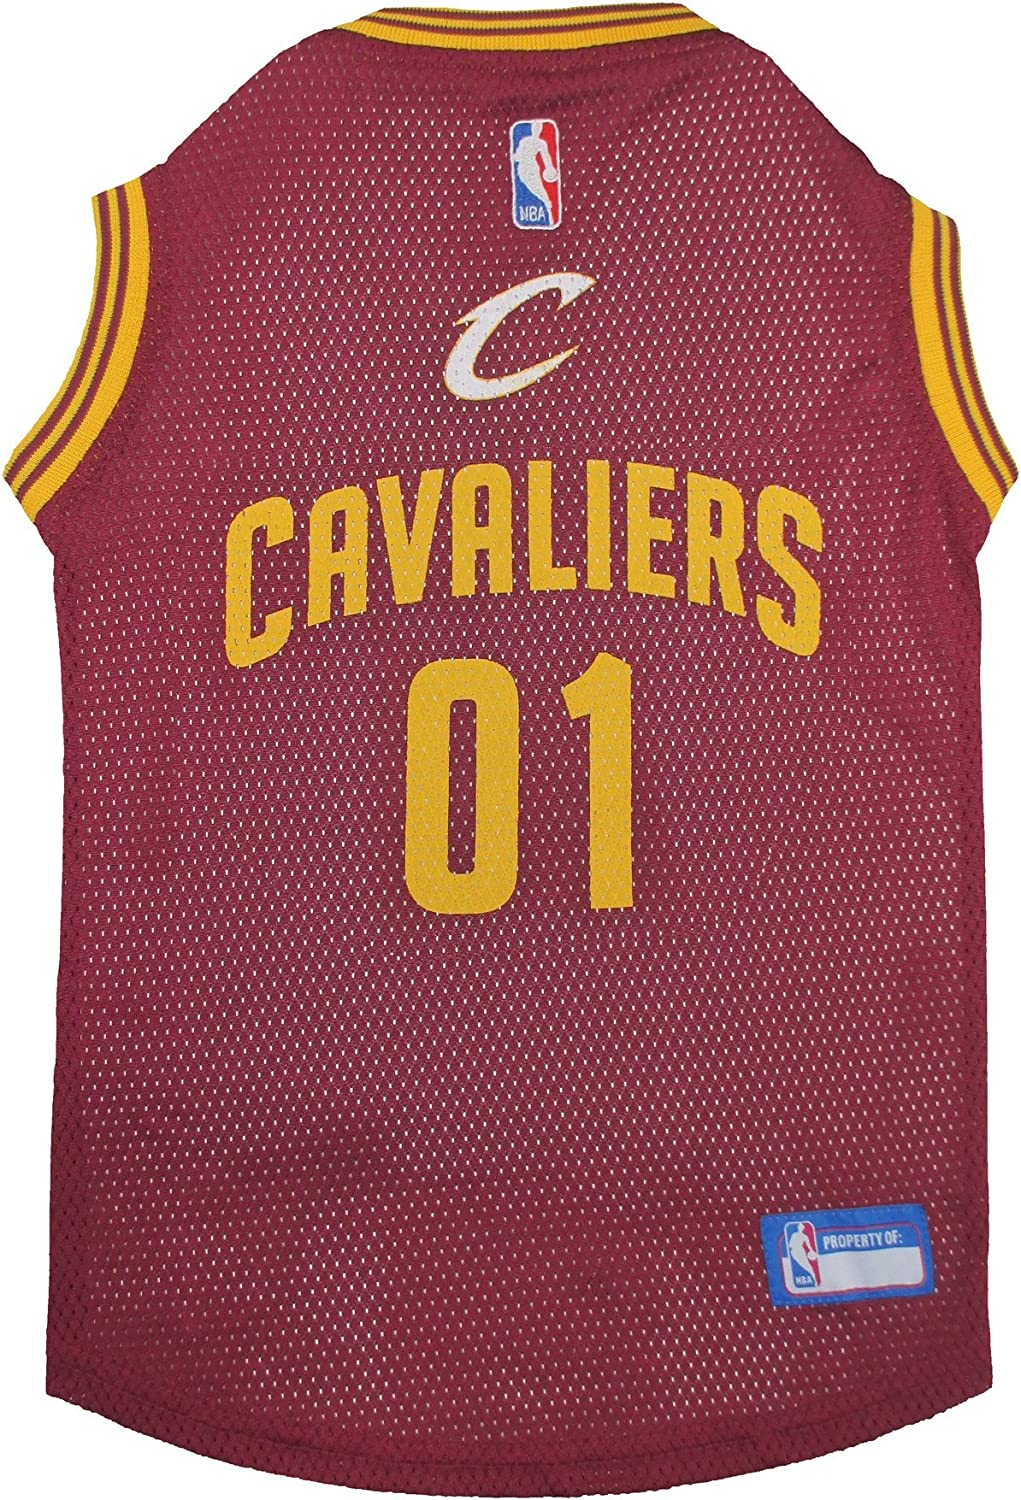 Best NBA Dog Gear NBA PET Apparel Licensed Jerseys for Dogs /& Cats Available in 25 Basketball Teams /& 5 Sizes Cute pet Clothing for All Sports Fans